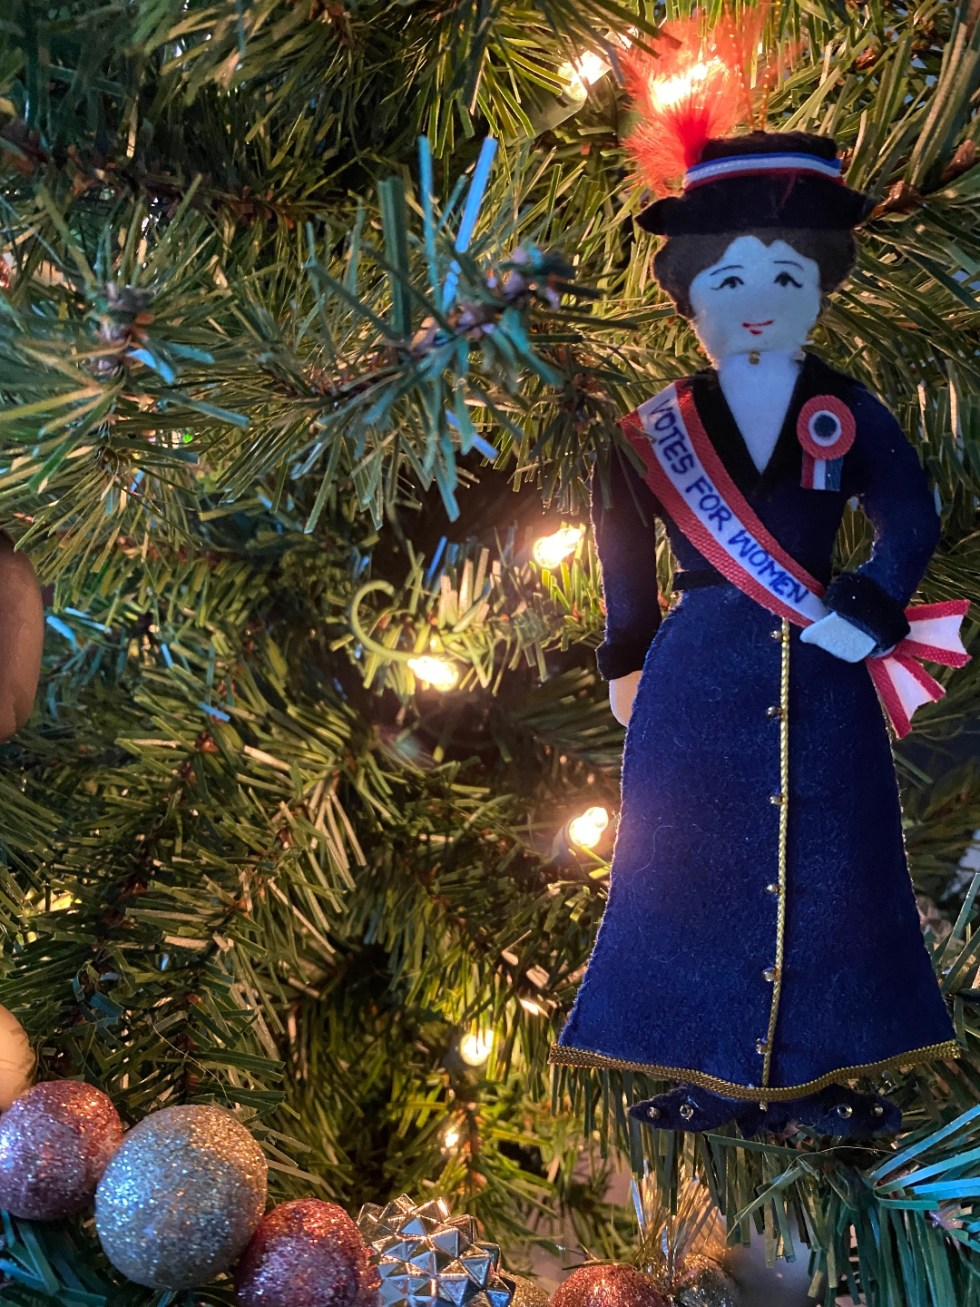 2020 Holidays: Unique Christmas Ornaments - I'm Fixin' To - @mbg0112 |Unique Christmas Ornaments by popular NC life and style blog, I'm Fixin' To: image of a suffragette ornament.